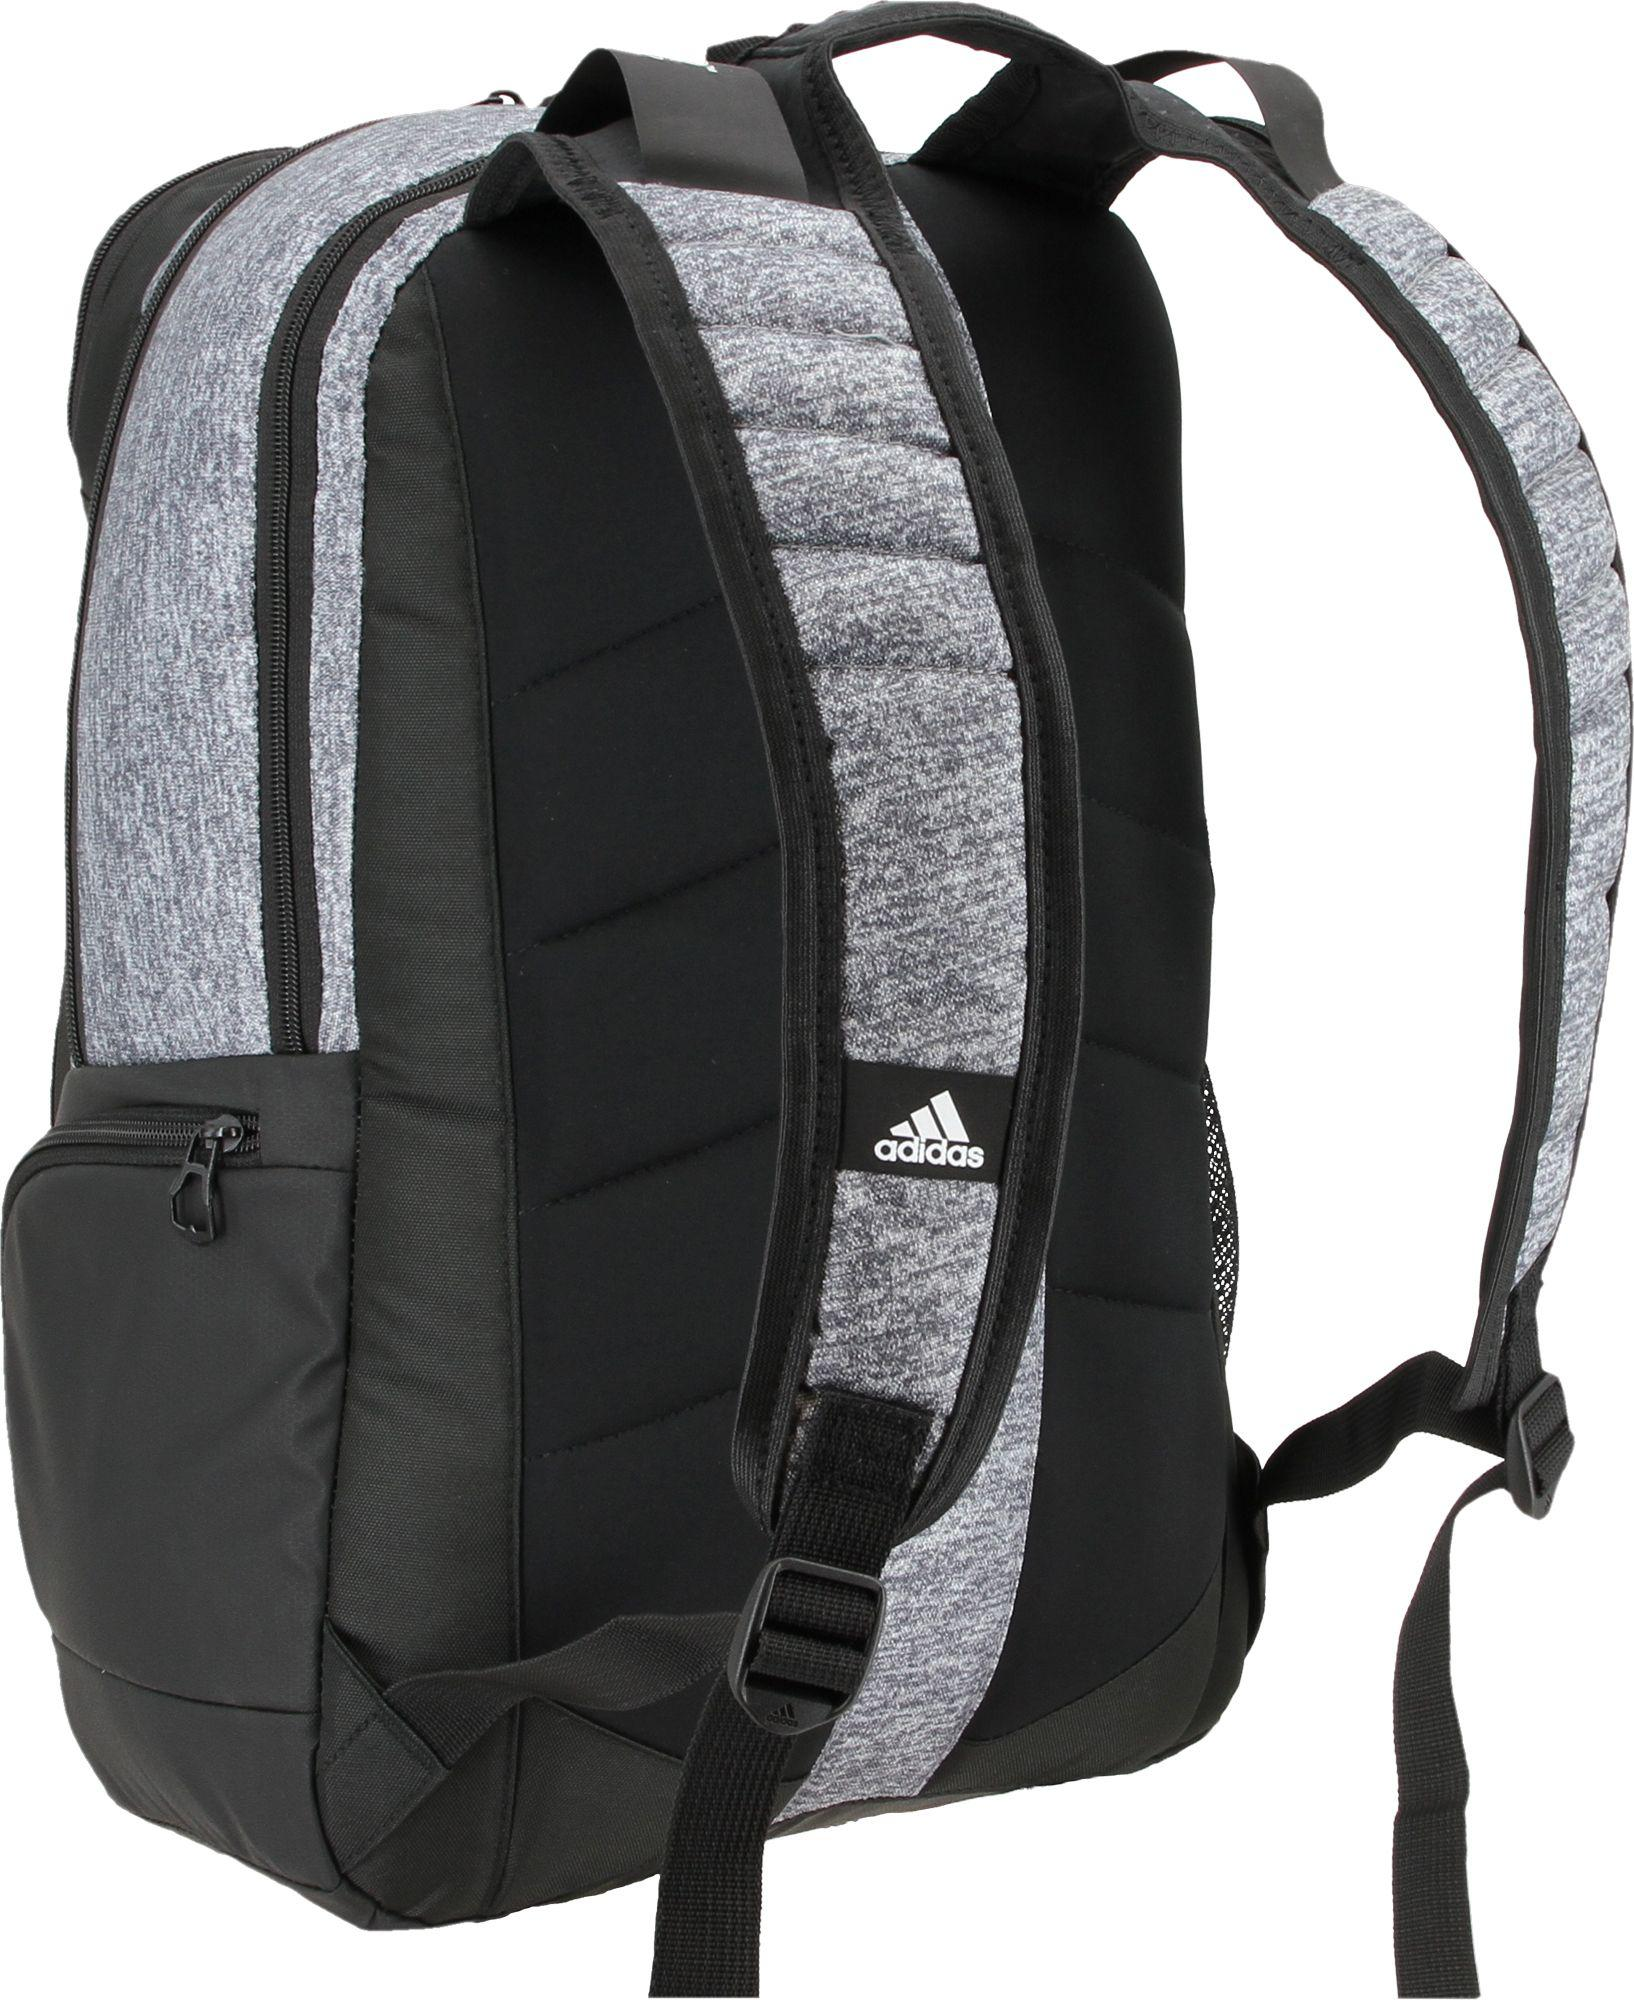 Lyst - adidas Strength Backpack in Black for Men 55b5bbd4c6d78